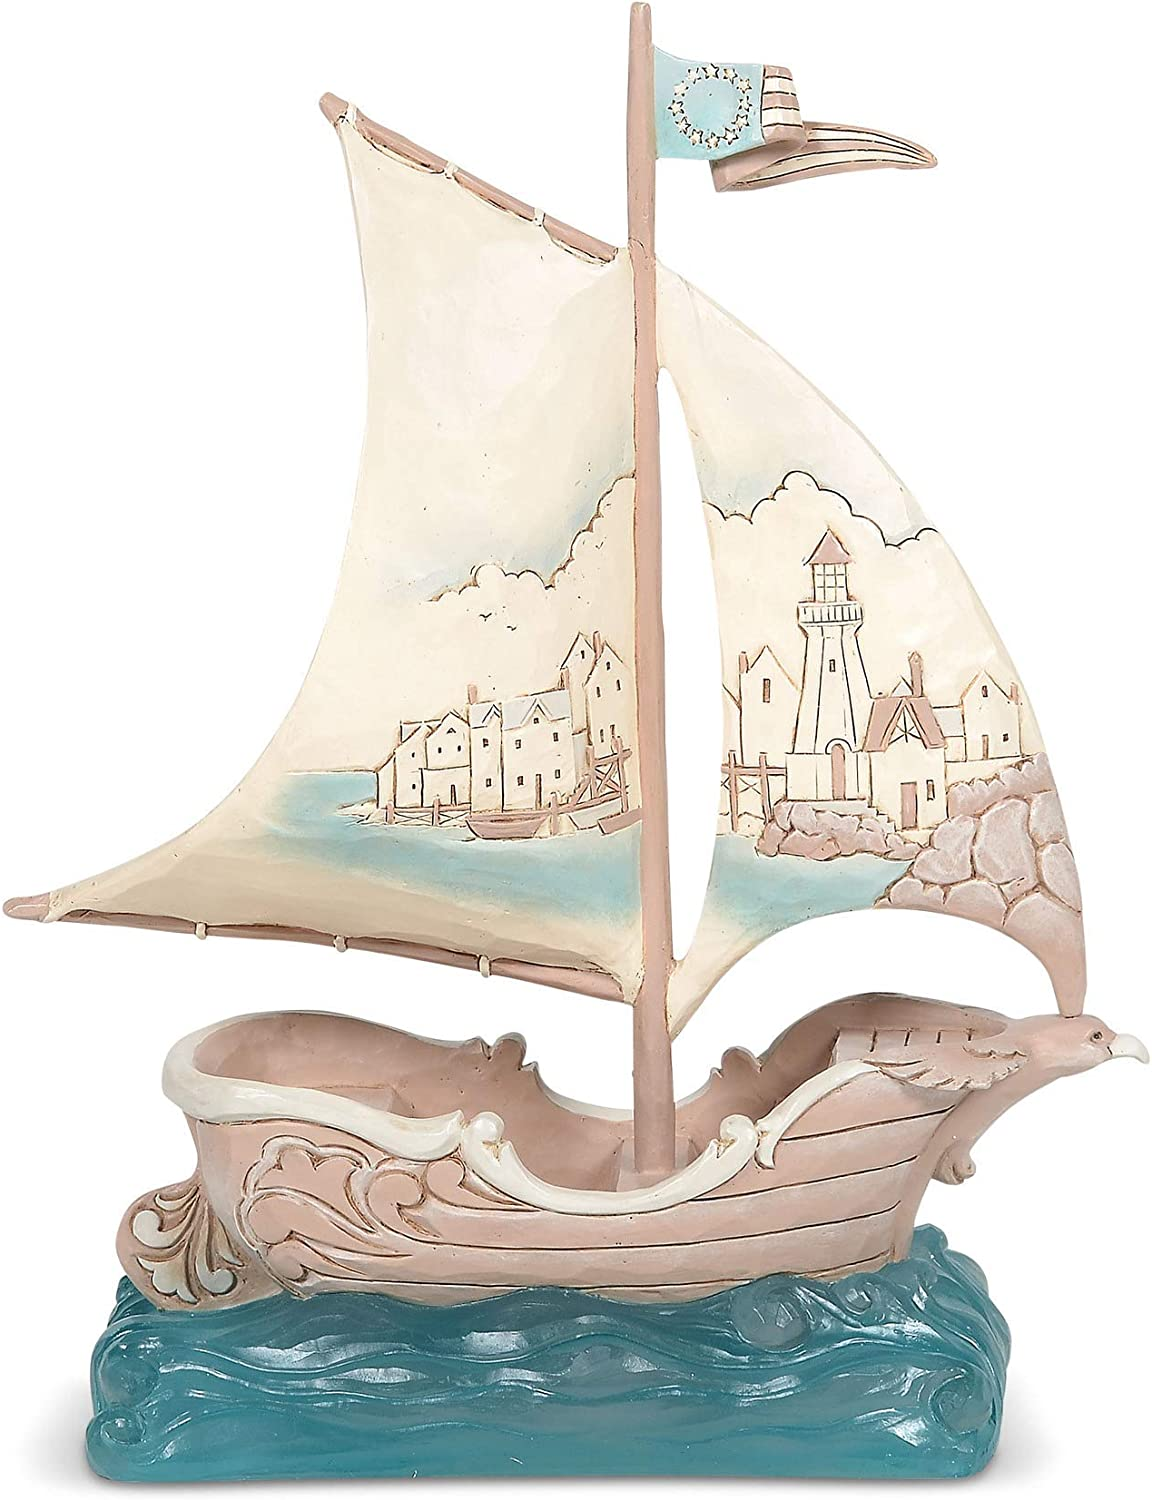 Enesco Jim Shore Heartwood Creek Coastal Sailboat with Scene Figurine